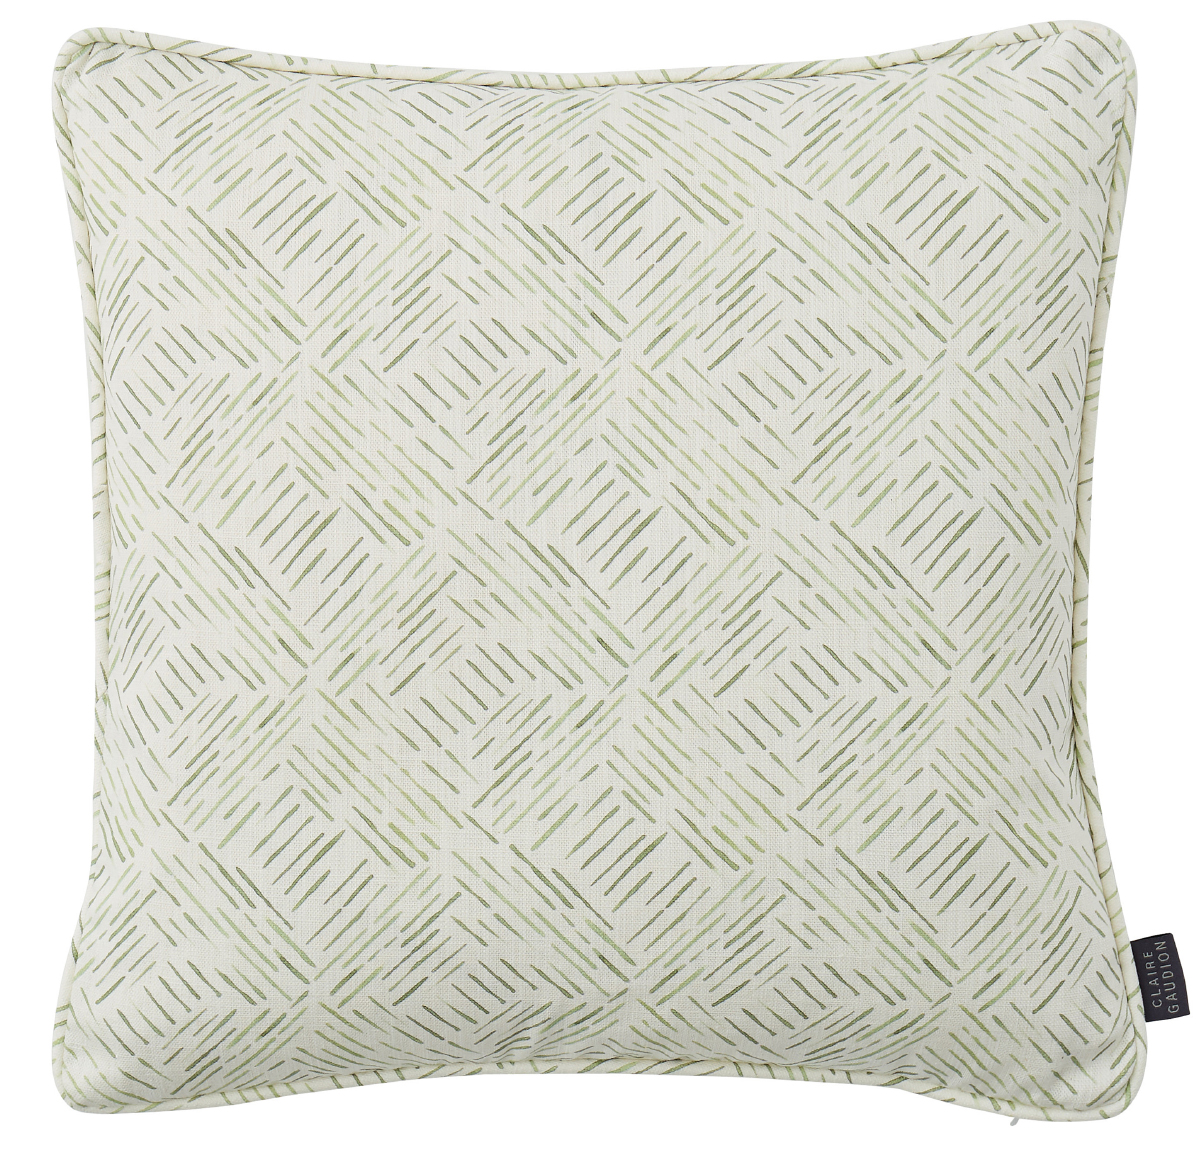 Grassland Sage Green Cushion by Claire Gaudion